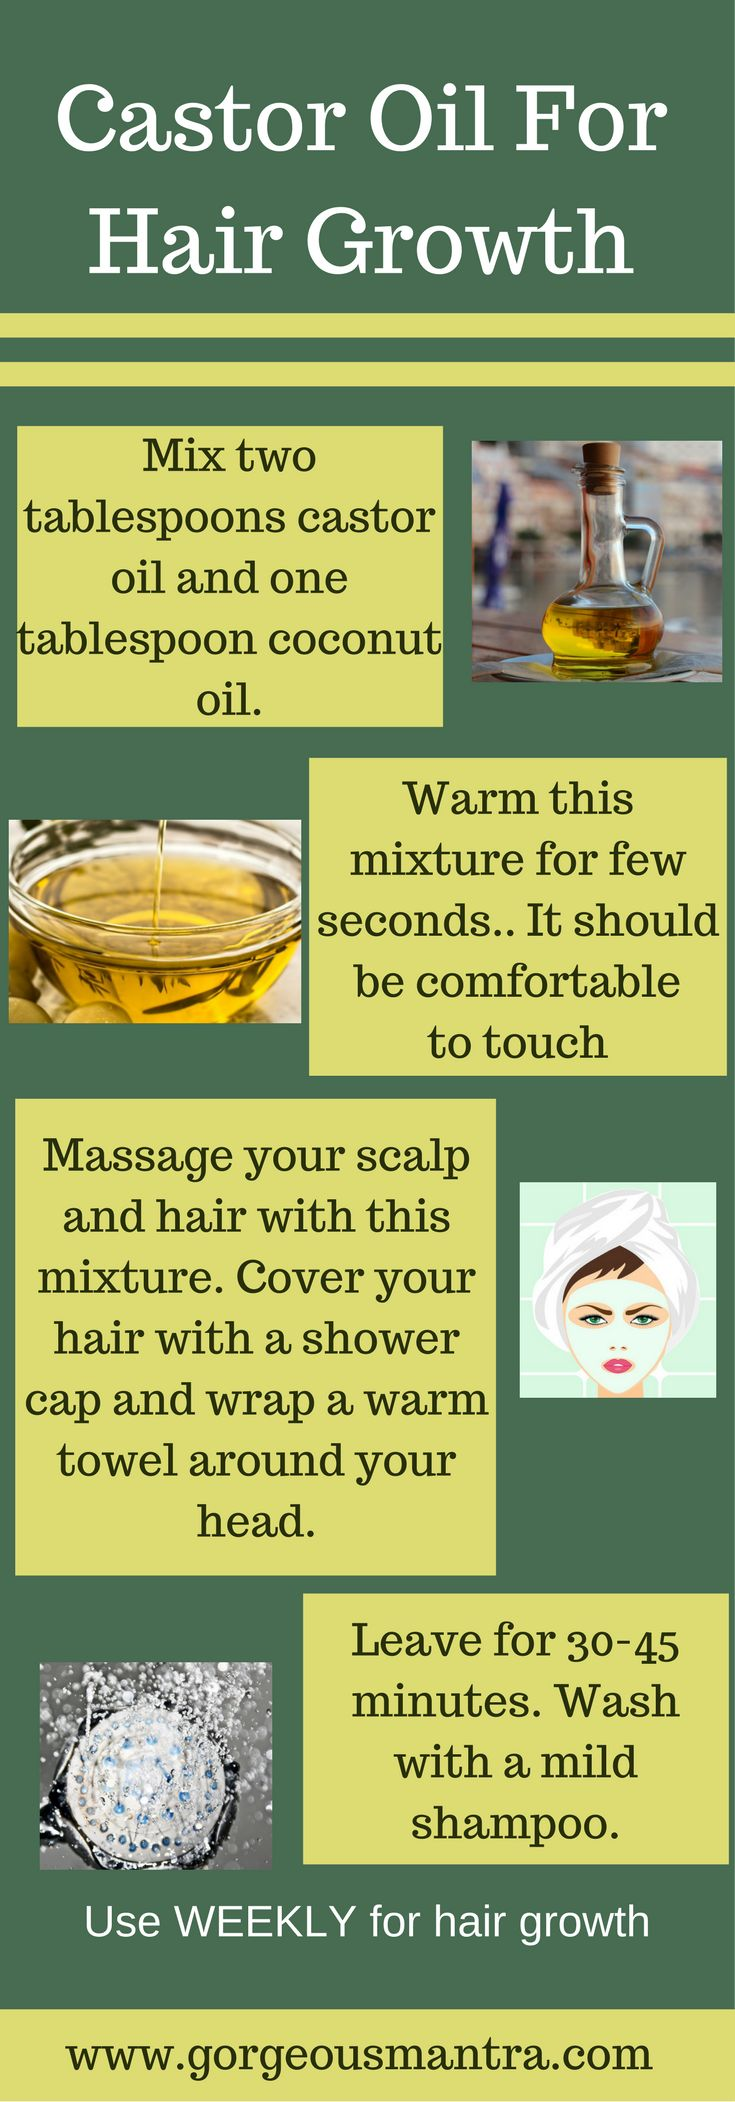 Use castor oil for hair growth. This weekly deep conditioning treatment is great for hair growth. Read more such ways of using castor oil for hair!